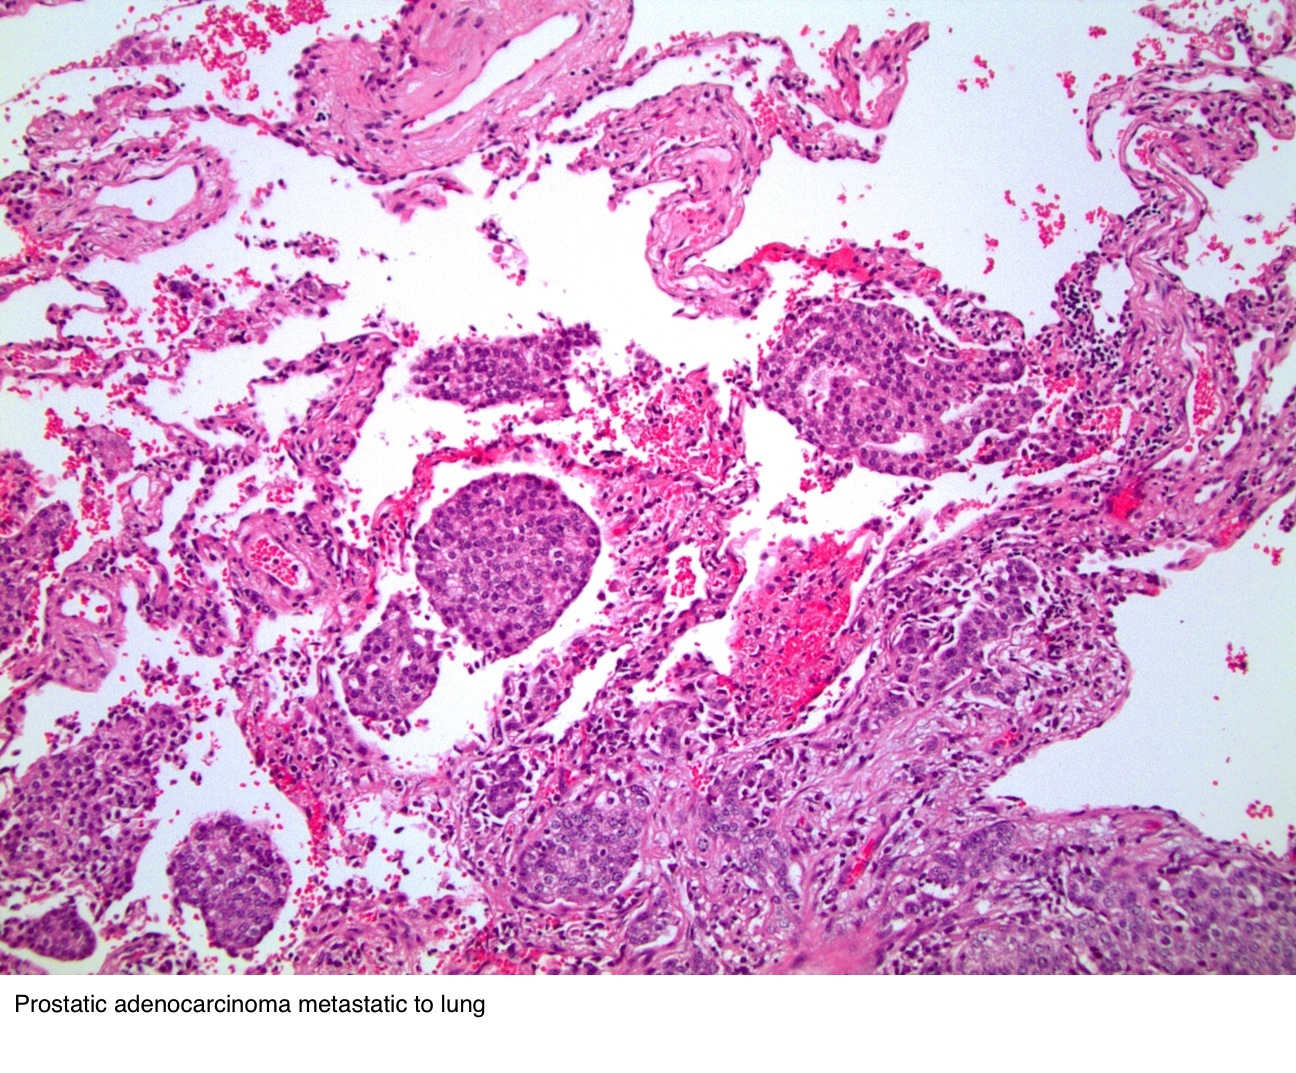 Prostatic<br>adenocarcinoma<br>metastatic to lung